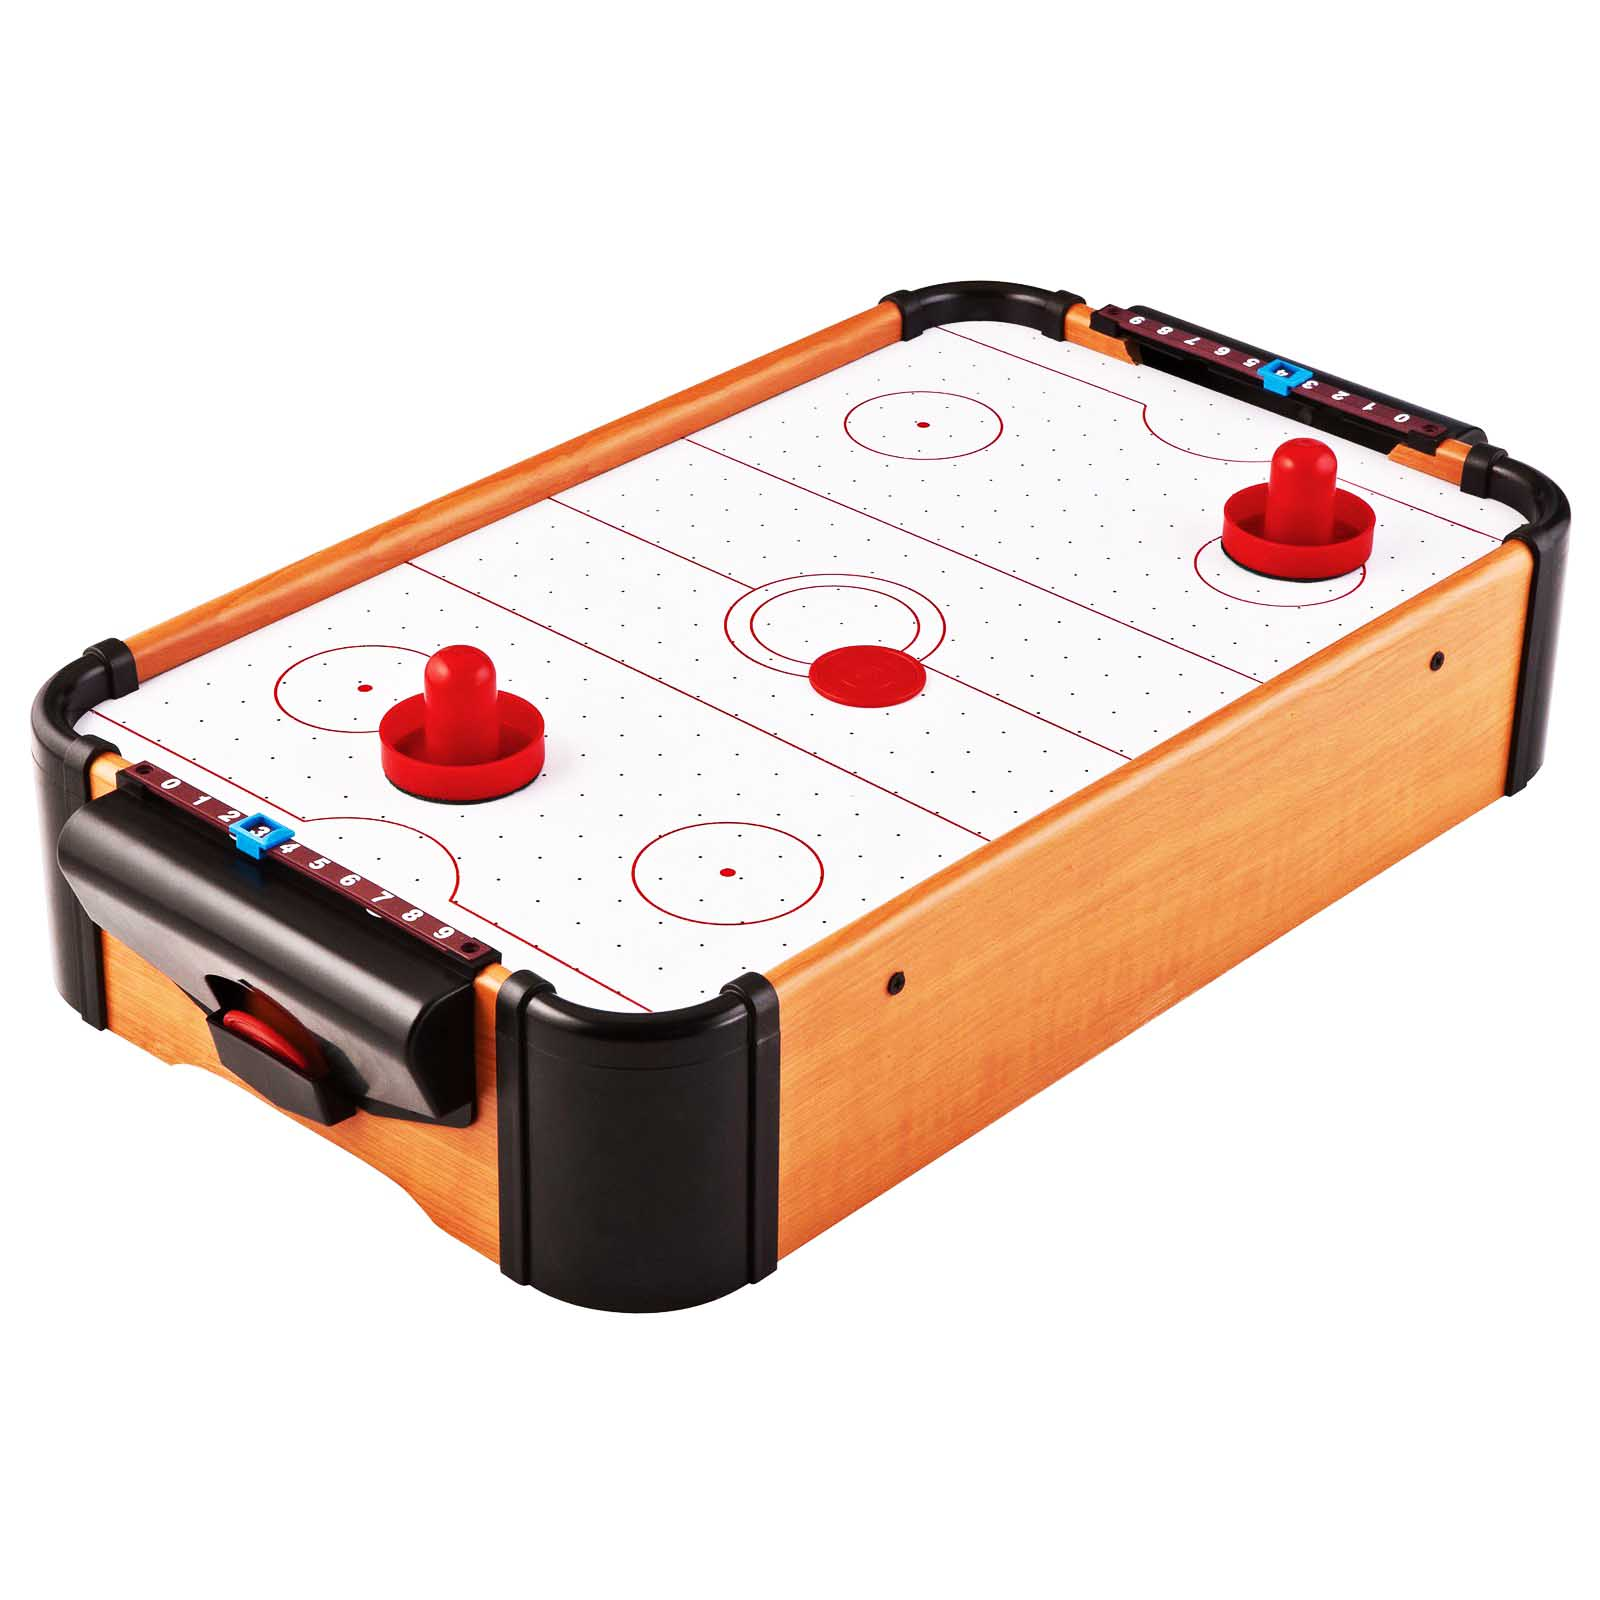 Exceptional Hathaway Air Hockey 3 3/4 In Strikers U0026 2 7/8 In Puck Set   Walmart.com